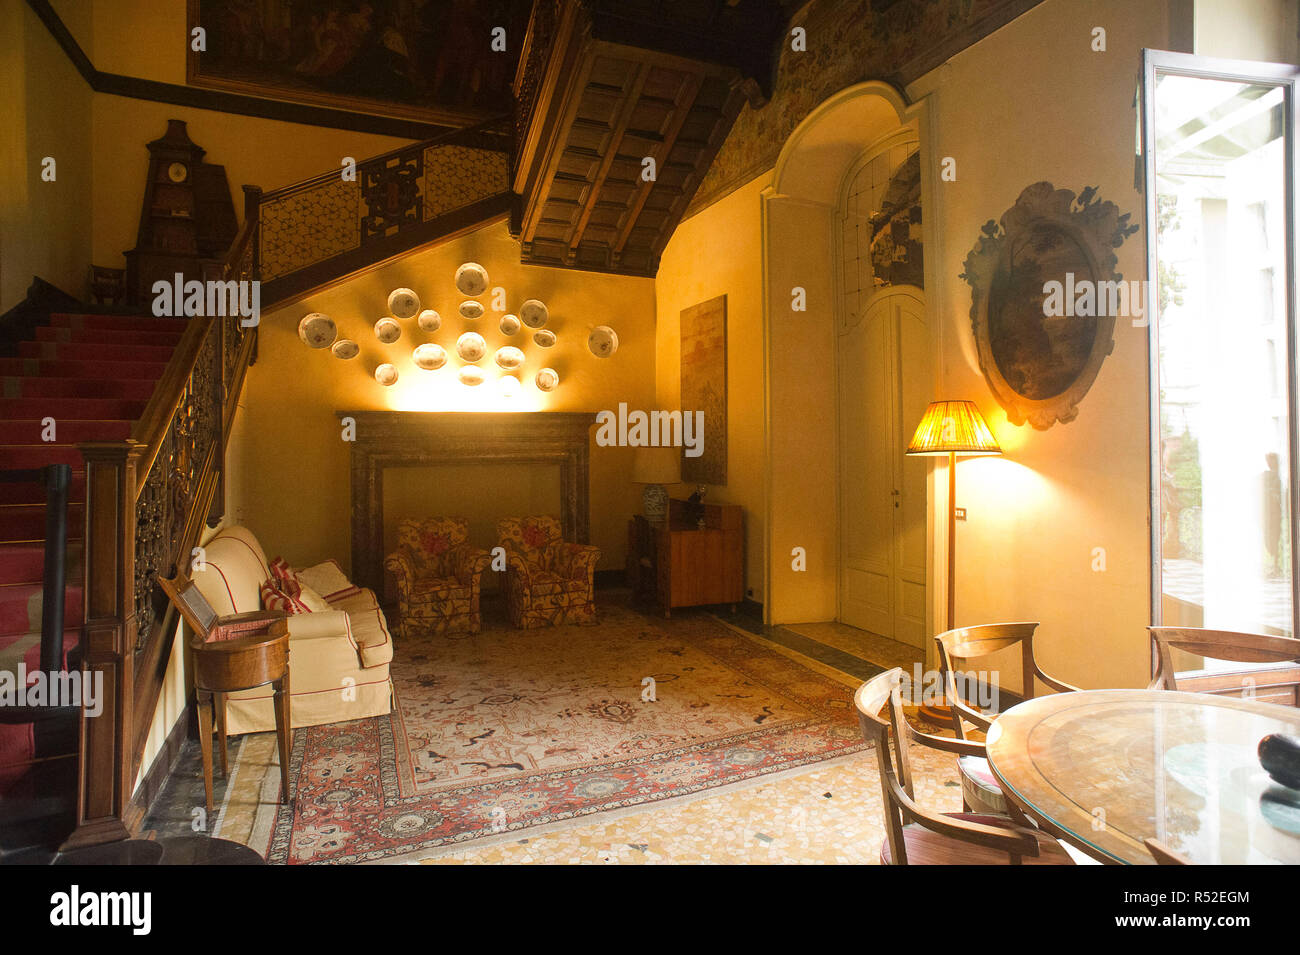 Italy, Lombardy, Milan, Casa Atellani is fifteenth century where Leonardo da Vinci lived and in the garden is his vineyard. A courtyard is fifteenth and a bramantesco. - Stock Image